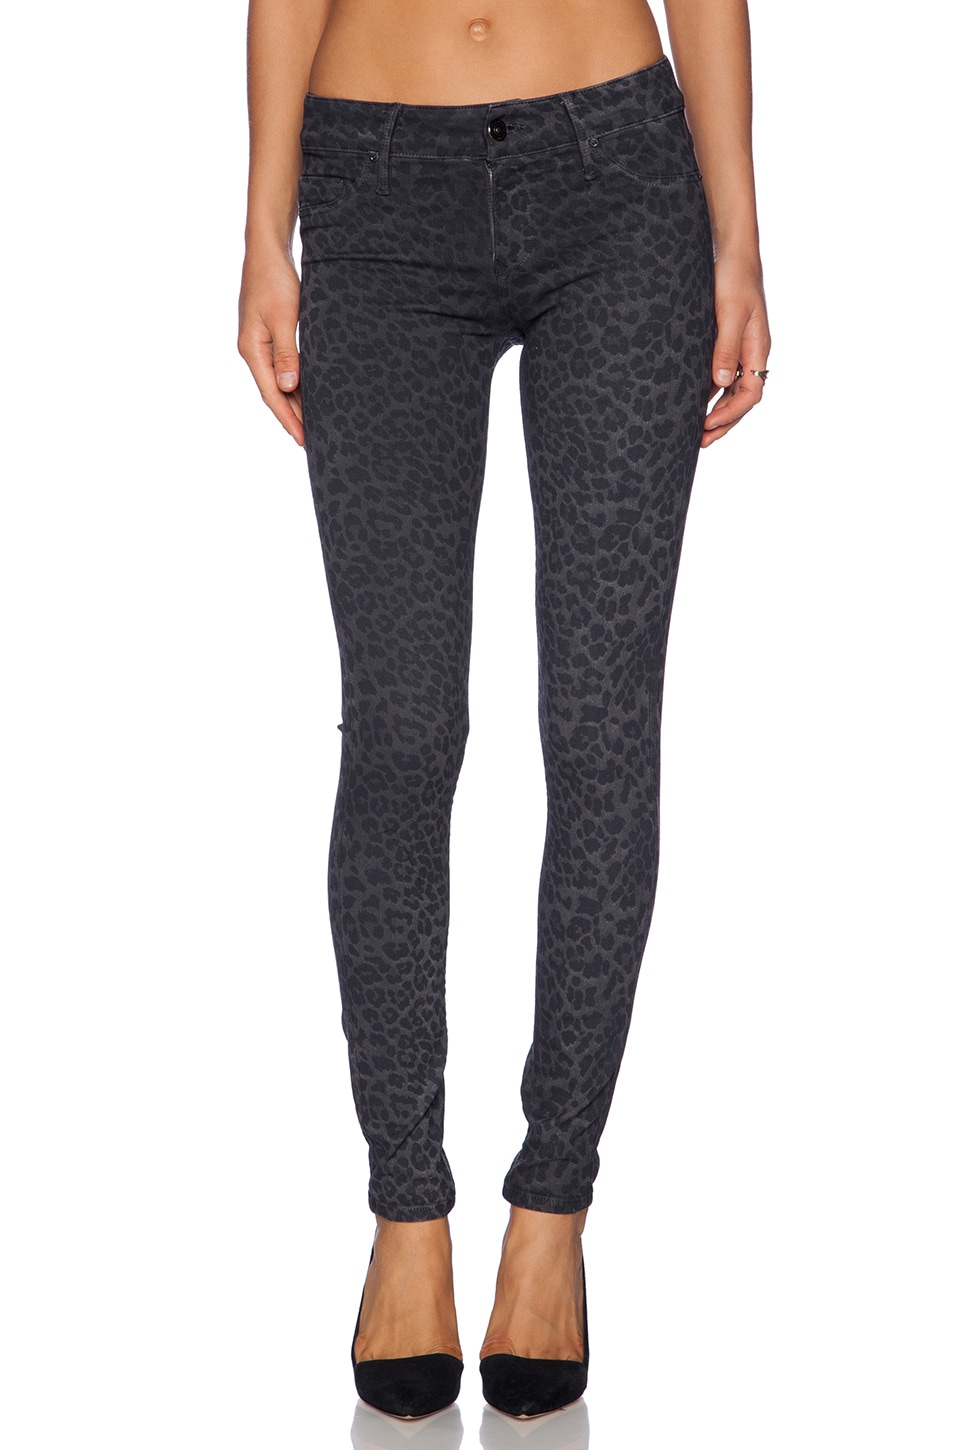 Black Orchid Coated Leopard Skinny in Cat's Meow